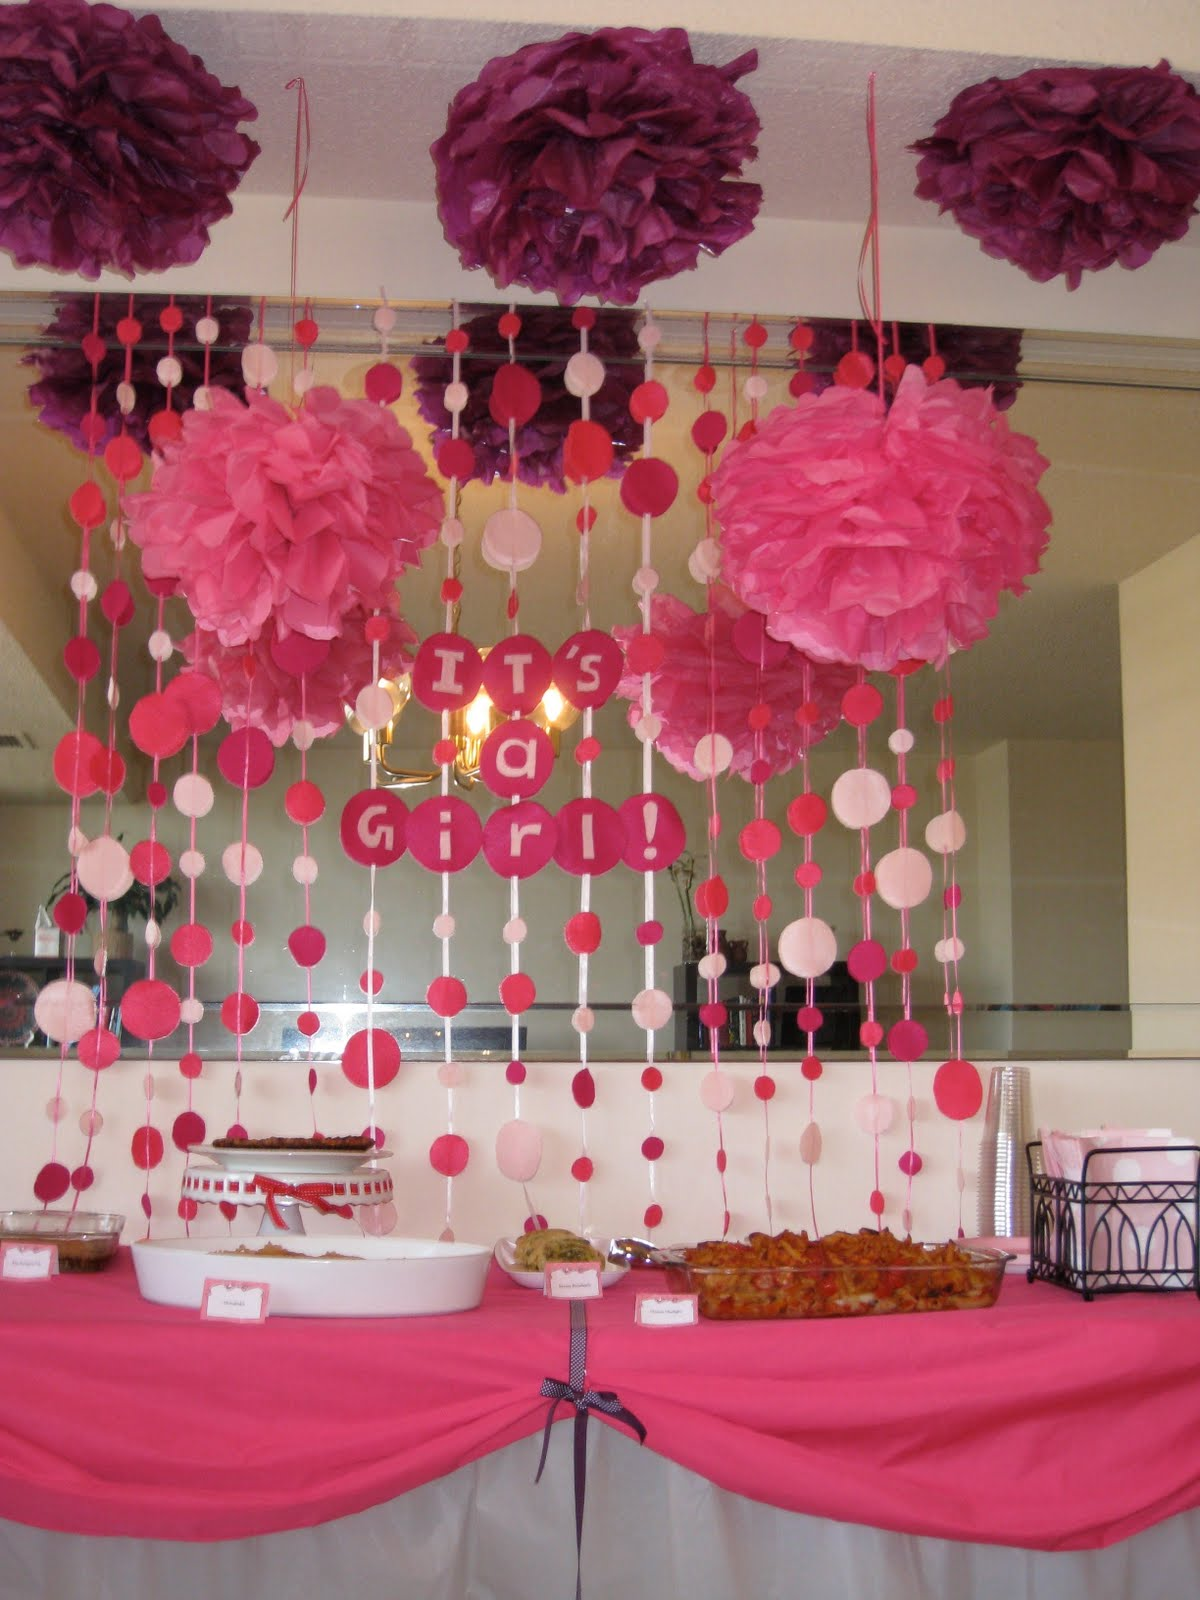 Baby shower food ideas baby shower ideas for a girl for Baby shower at home decorations